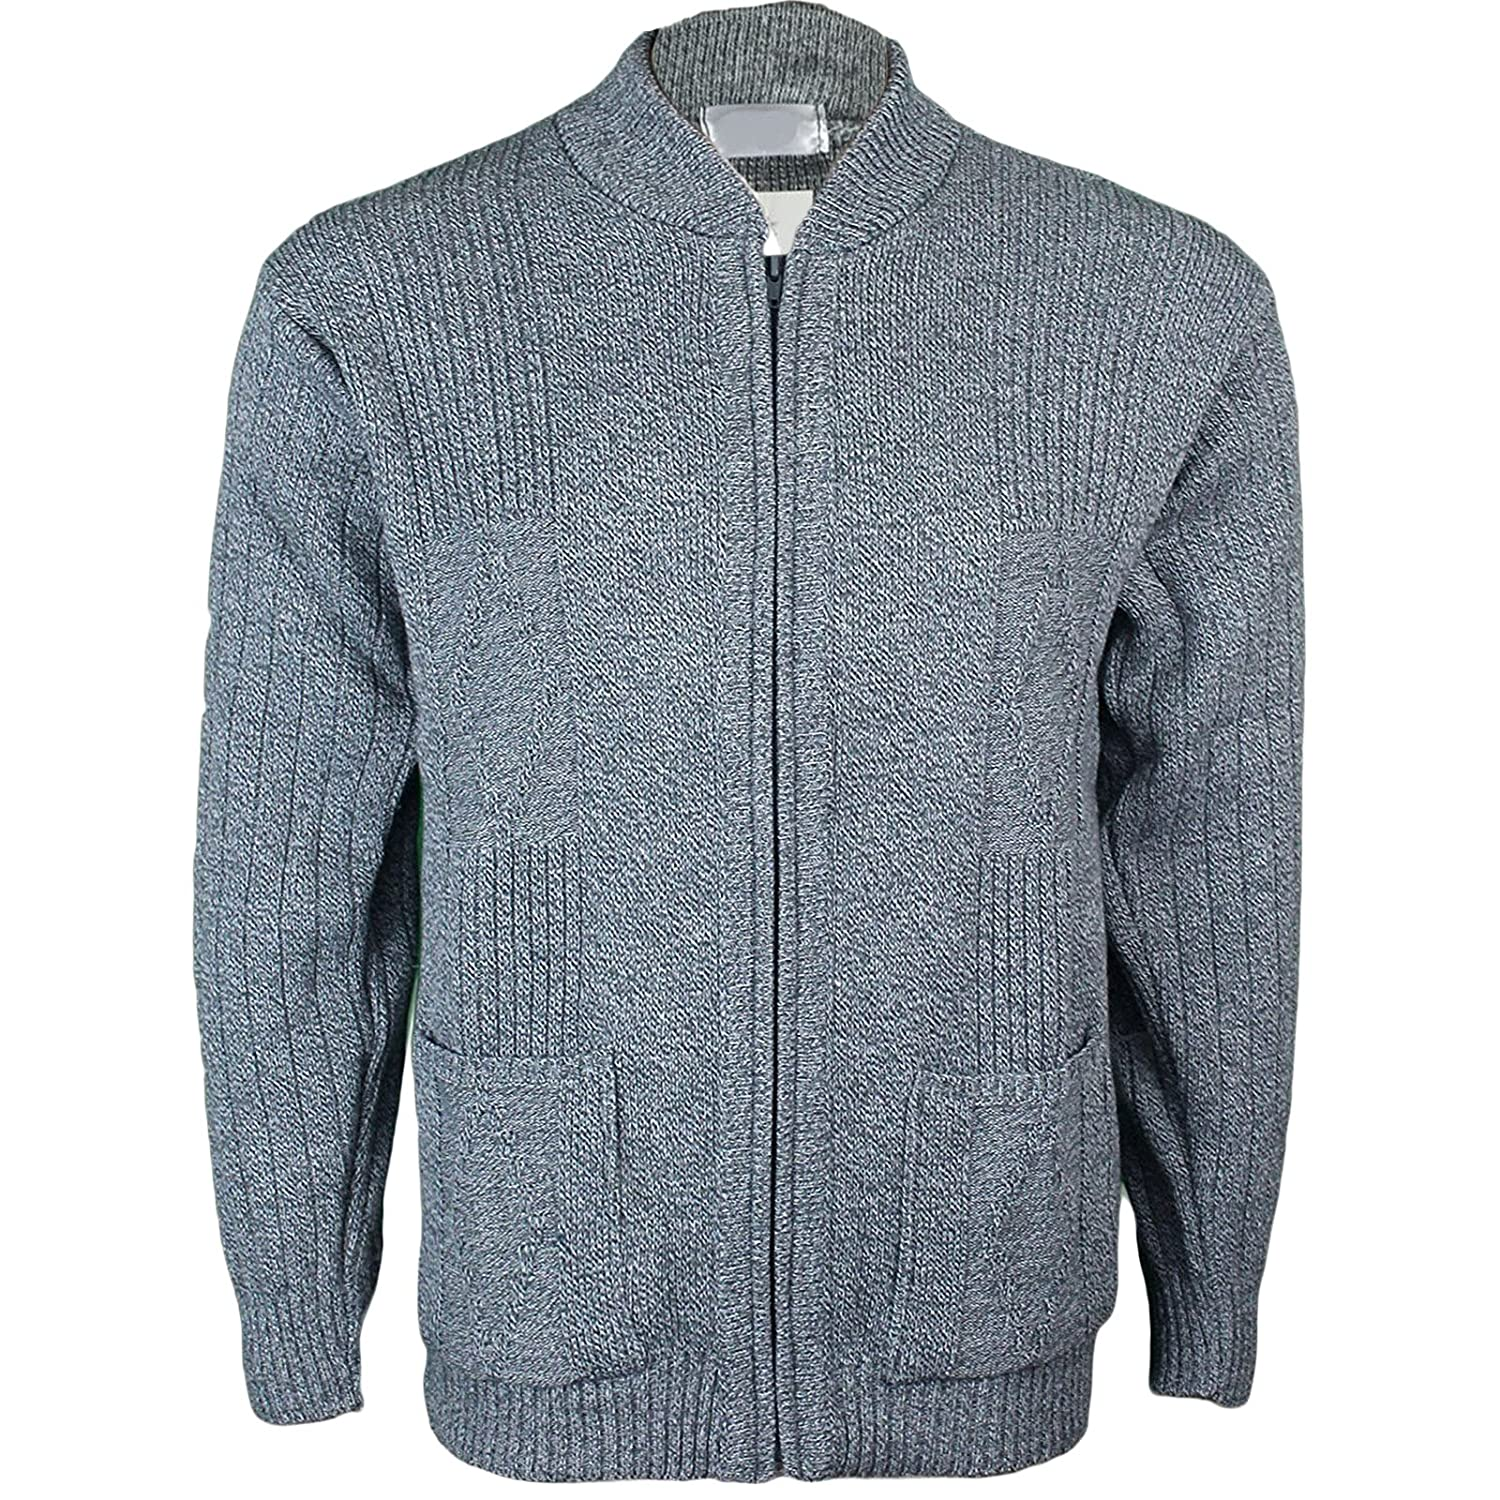 207172260 Mens Classic Zip Up Vintage Plain Knitted Grandad Cardigan Jumper UK ...